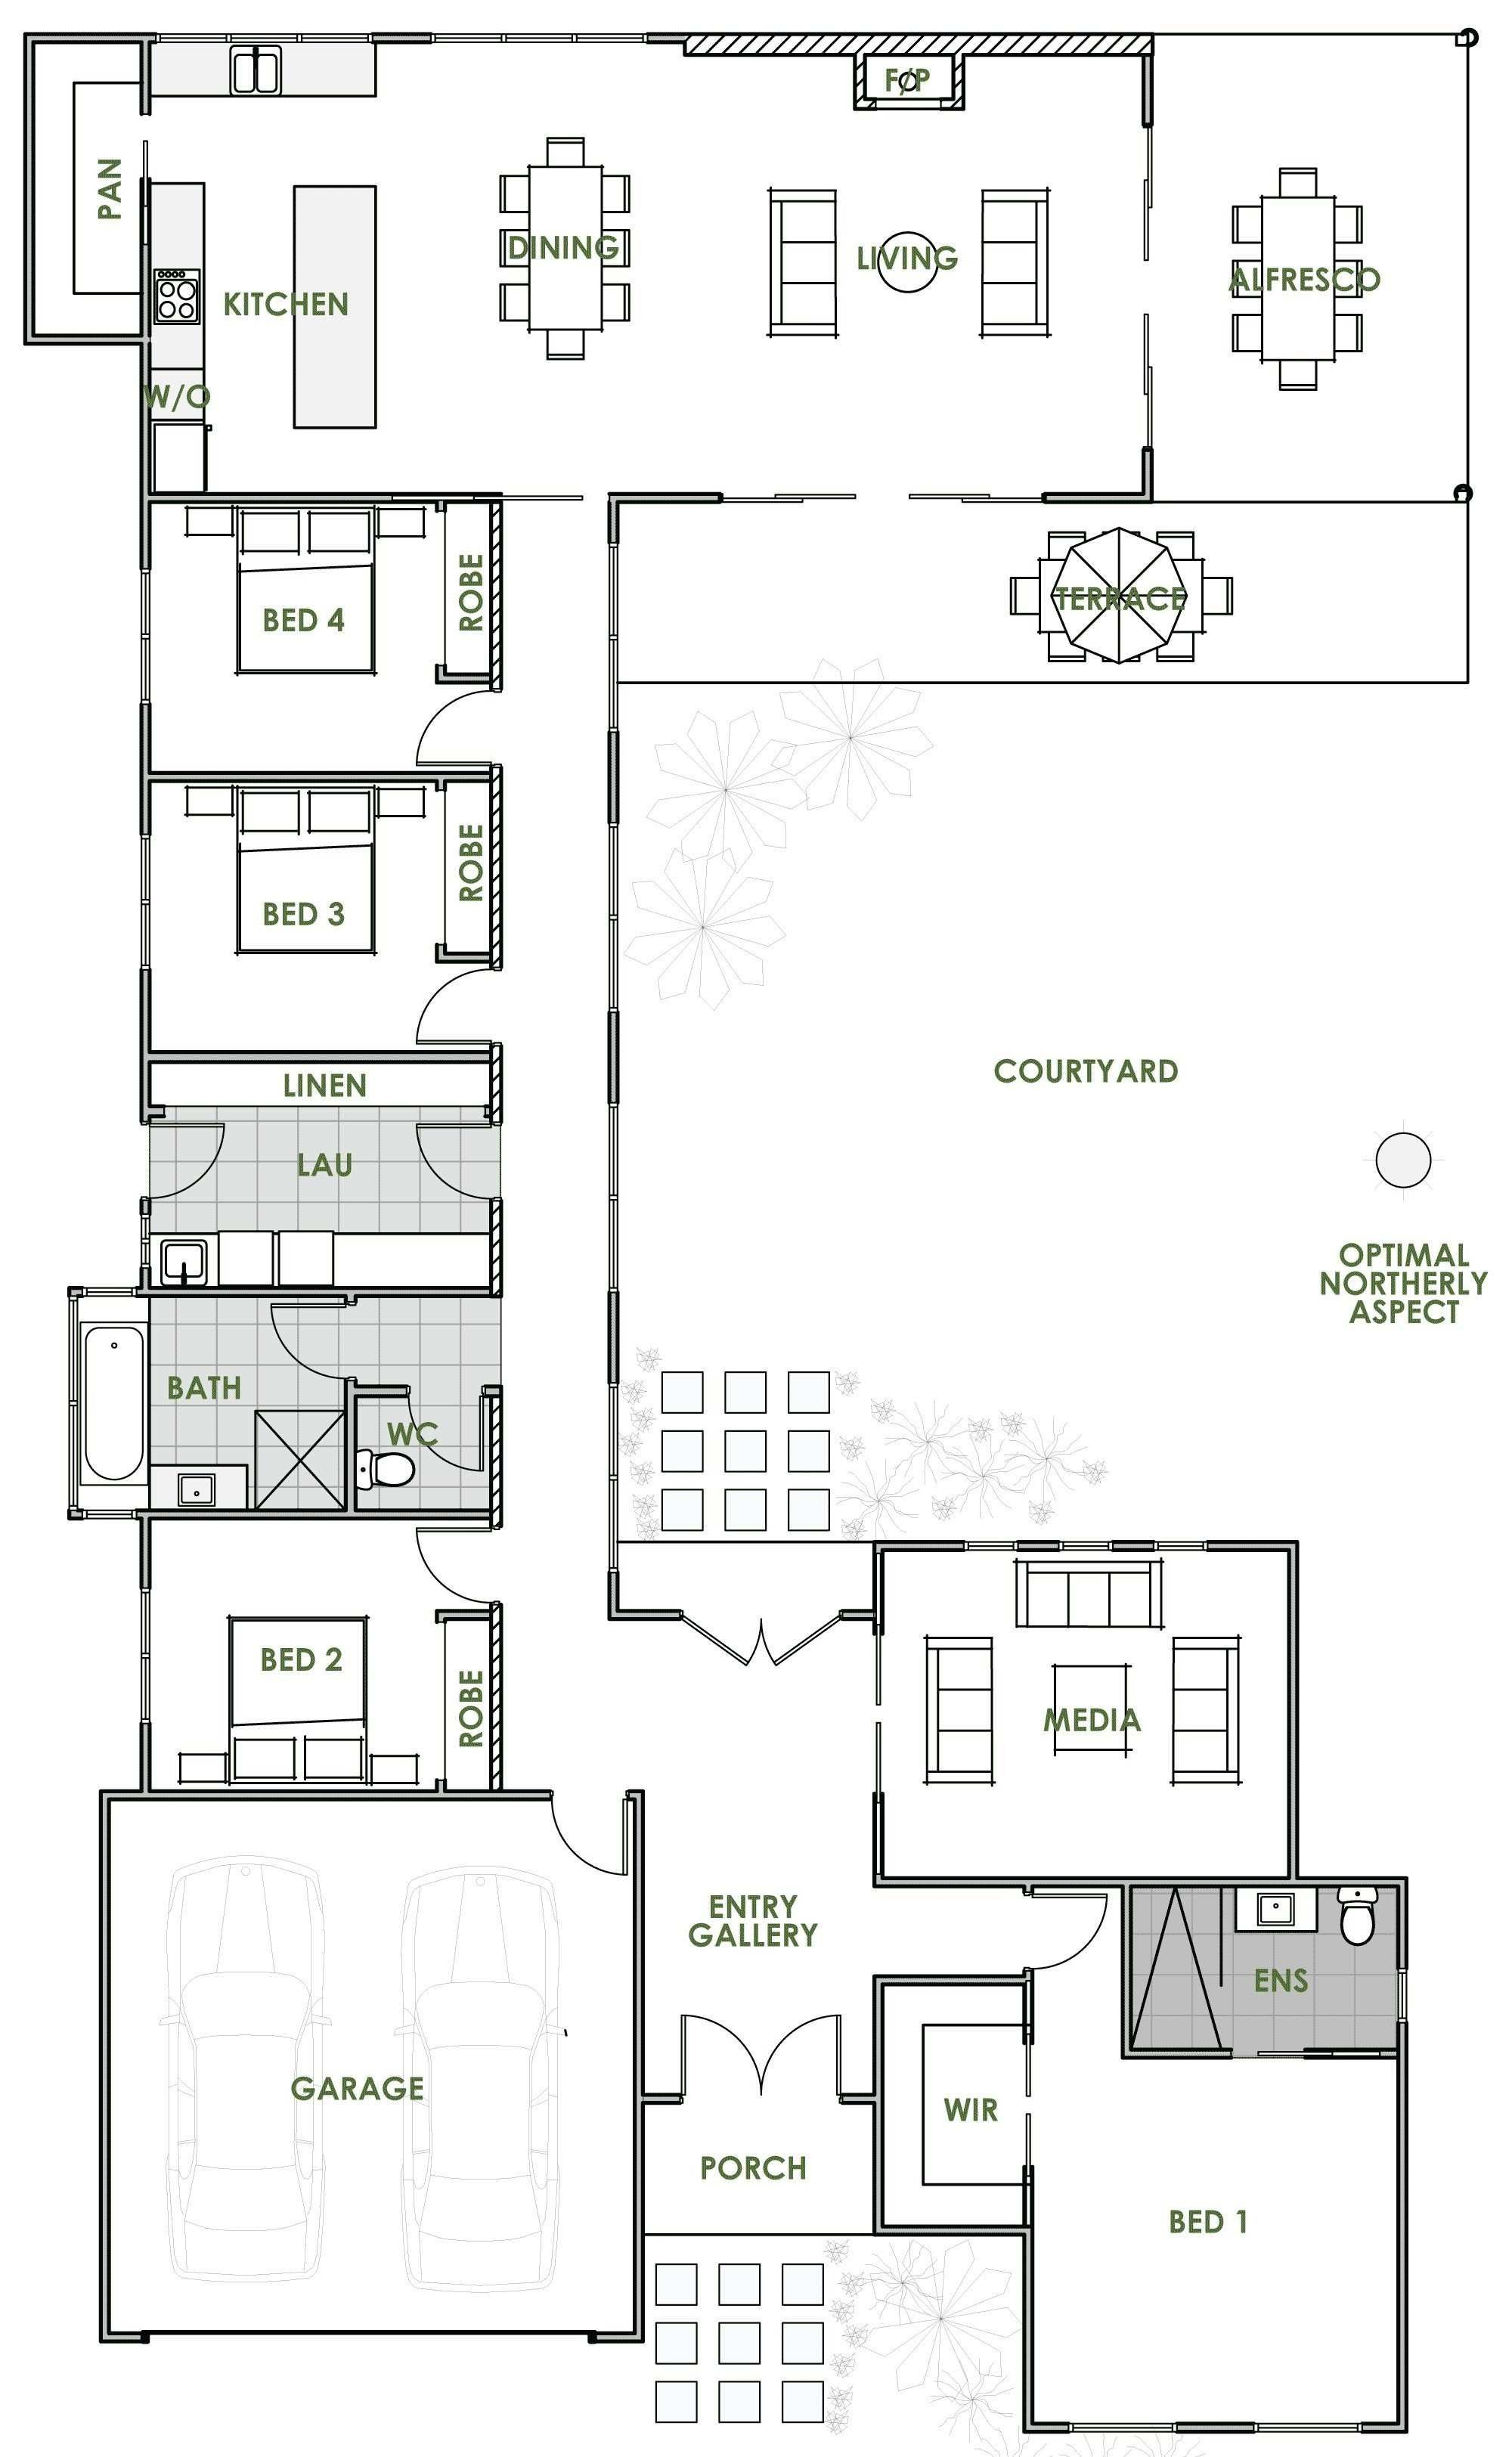 Best Of Cob House Designs From The Thousands Of Photographs On The Internet Regarding Cob H Open Floor House Plans U Shaped House Plans Courtyard House Plans